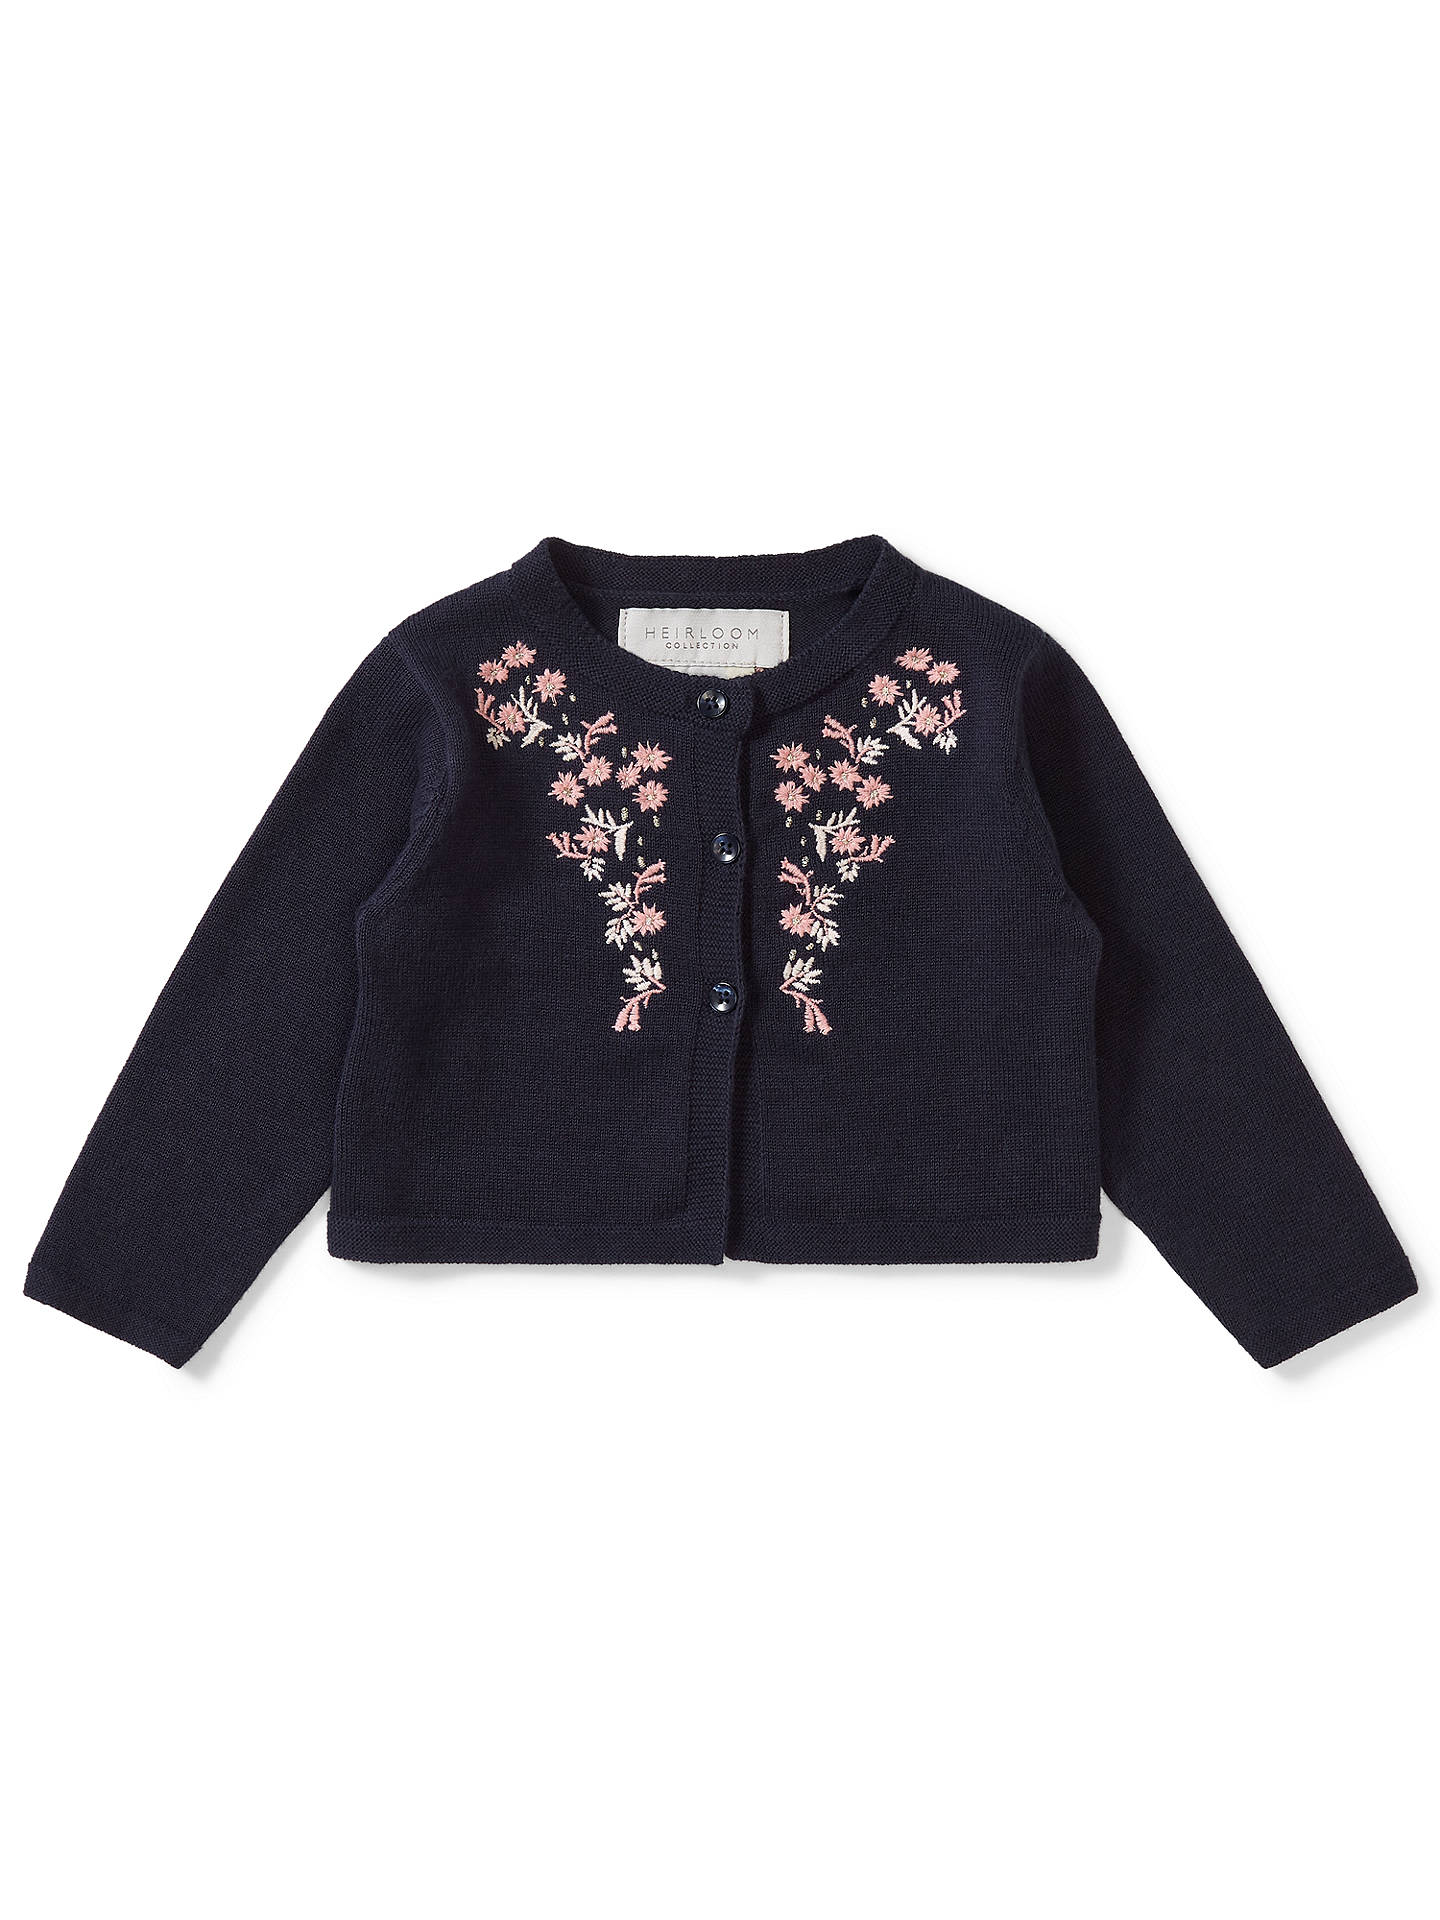 867bb206d37 Buy John Lewis   Partners Heirloom Collection Baby Floral Embroidered  Cardigan